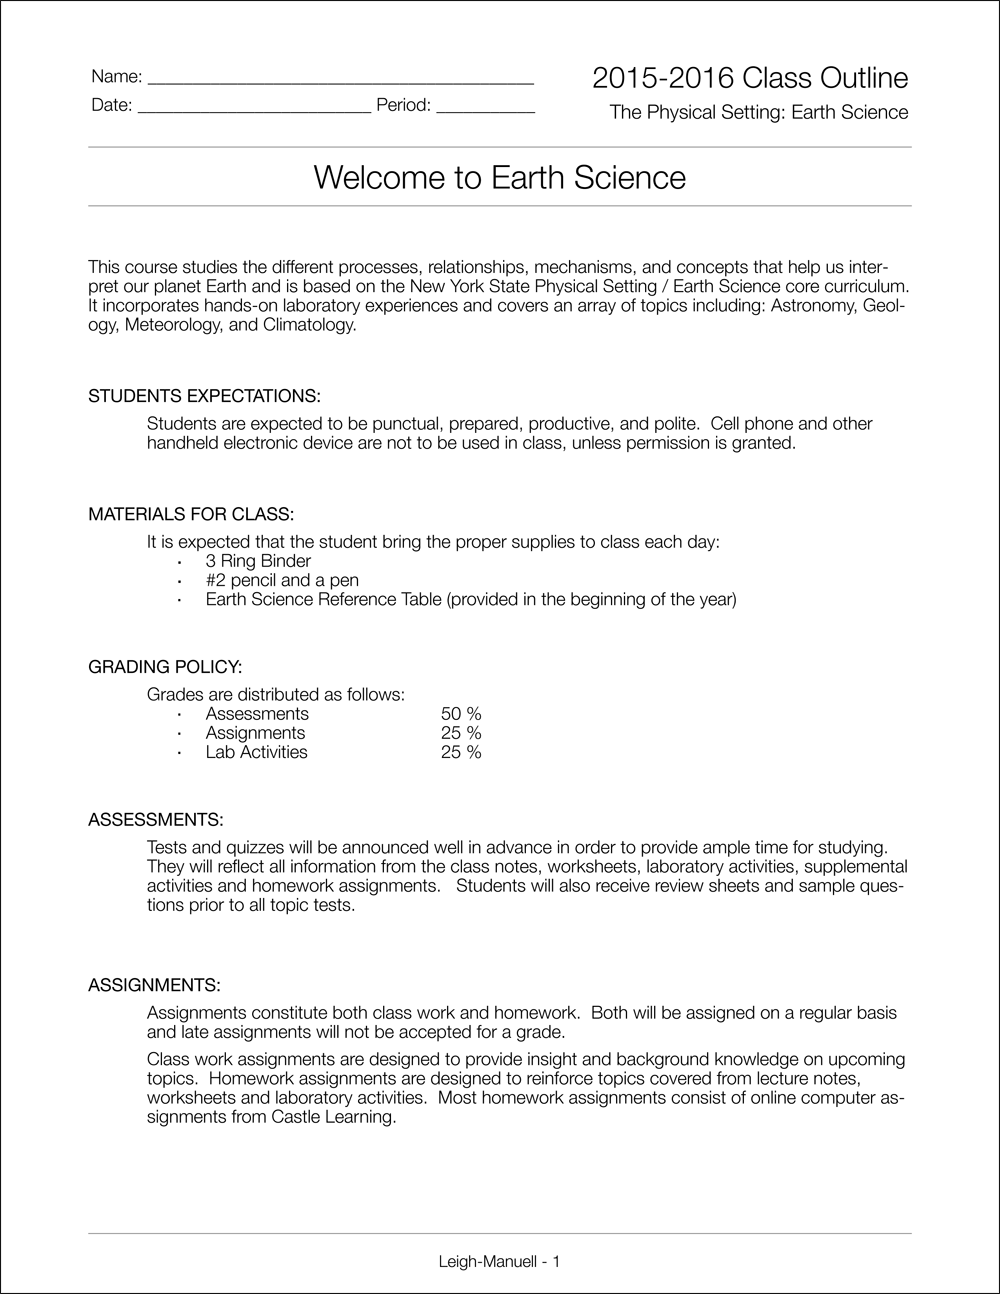 Worksheets Earth Science Review Worksheets mr leigh manuells earth science class